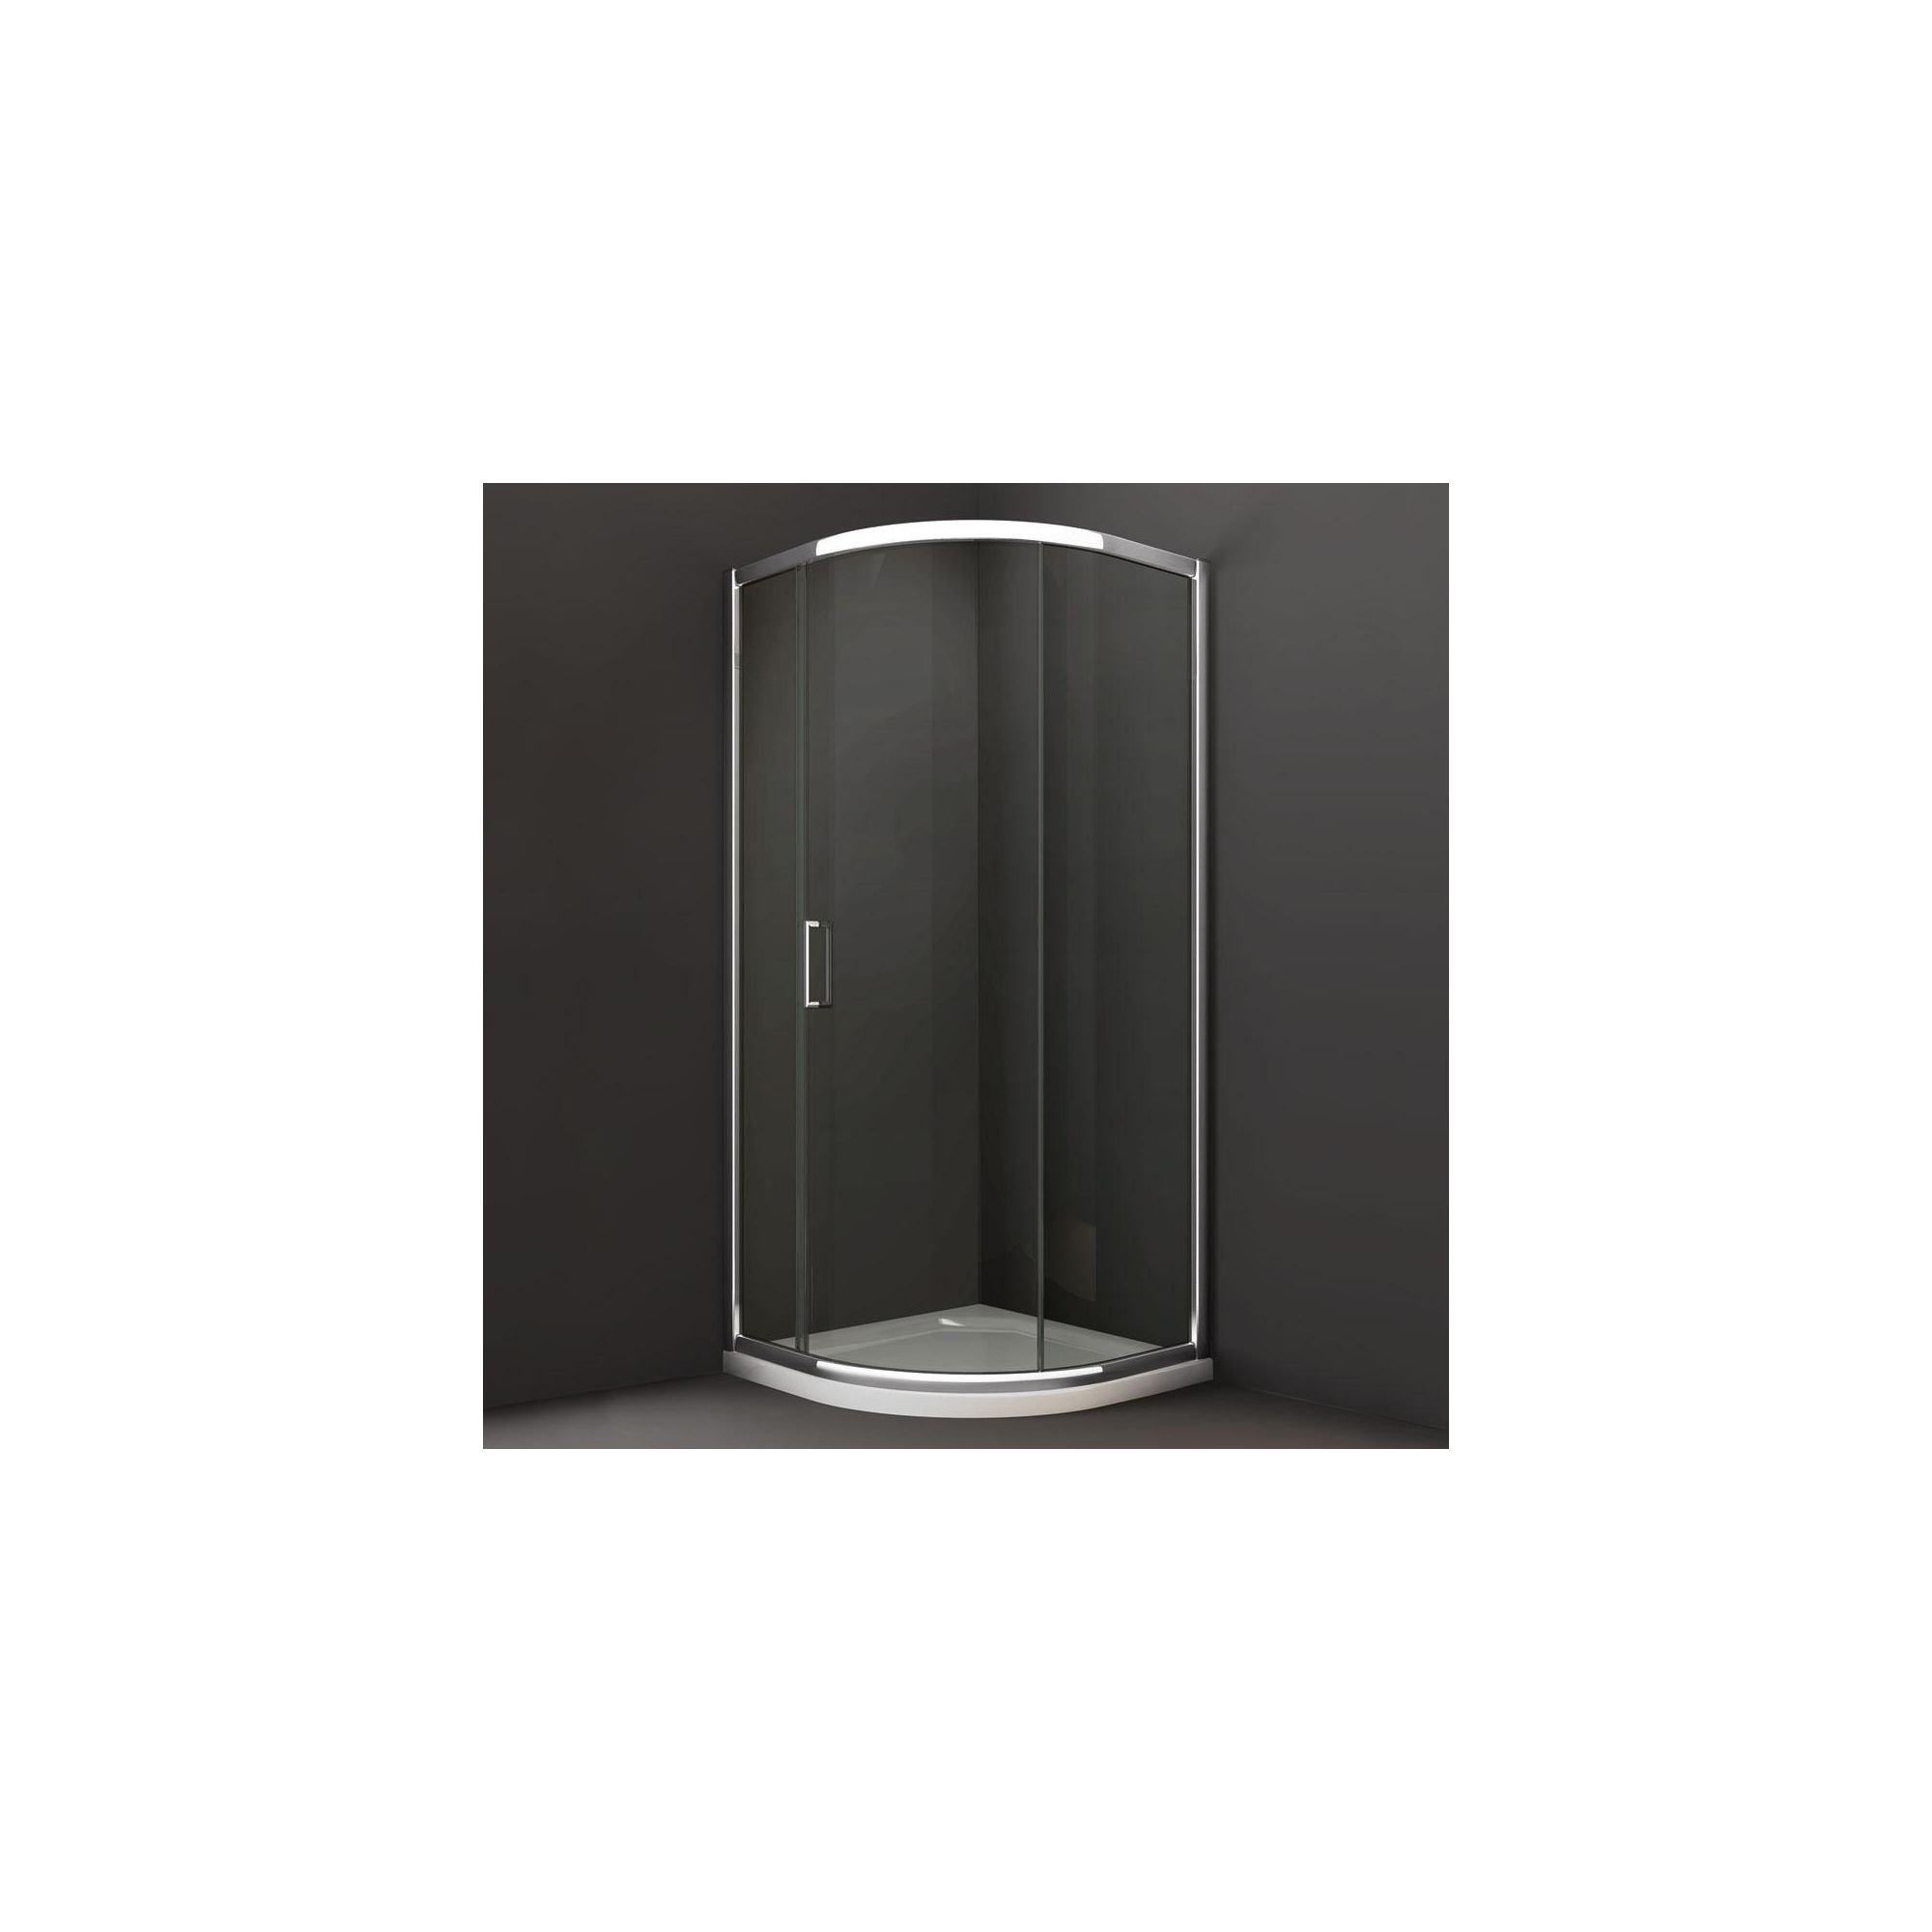 Merlyn Series 8 Single Quadrant Shower Door, 900mm x 900mm, Chrome Frame, 8mm Glass at Tesco Direct